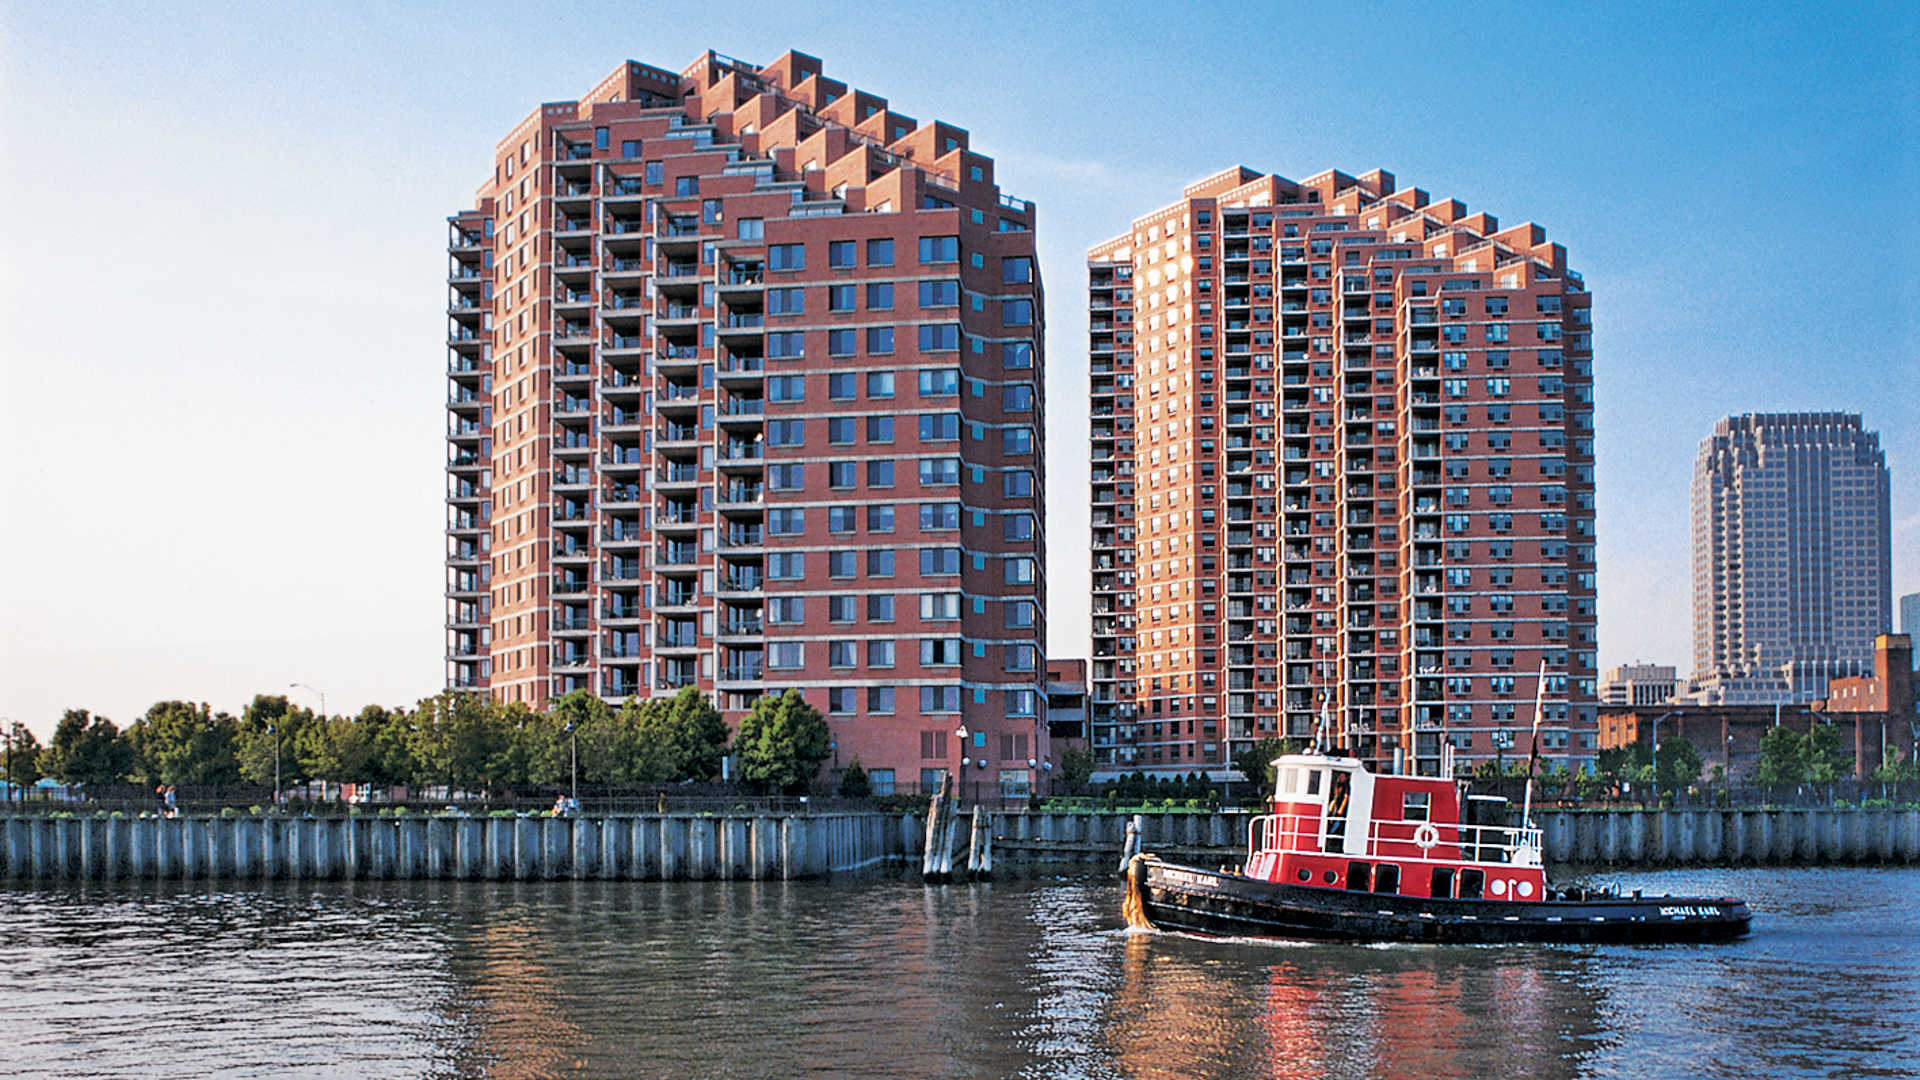 Portside towers apartments building